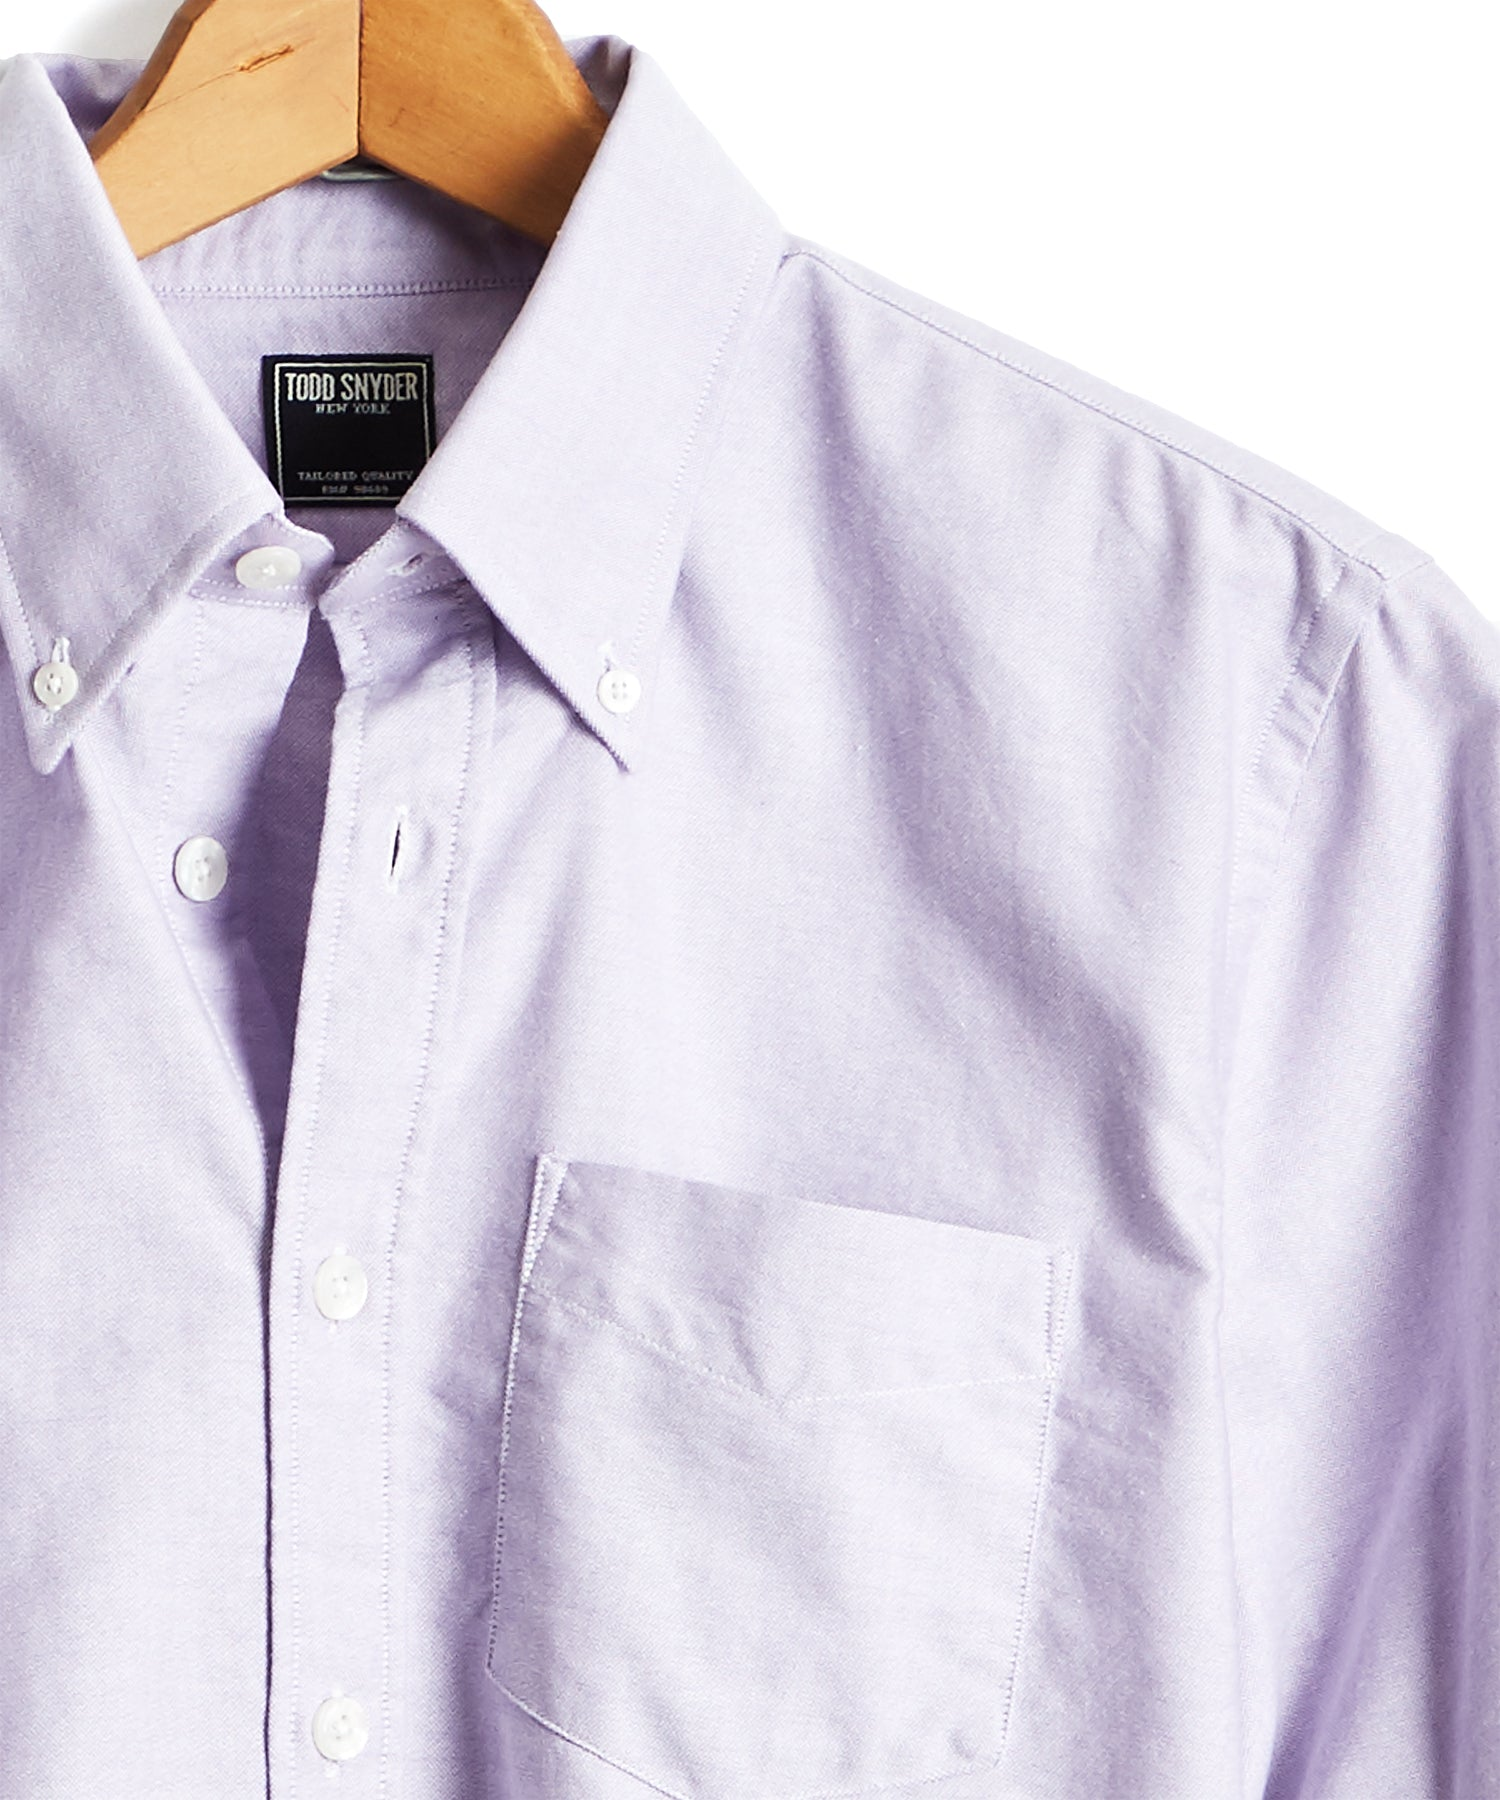 Solid Oxford Shirt in Purple